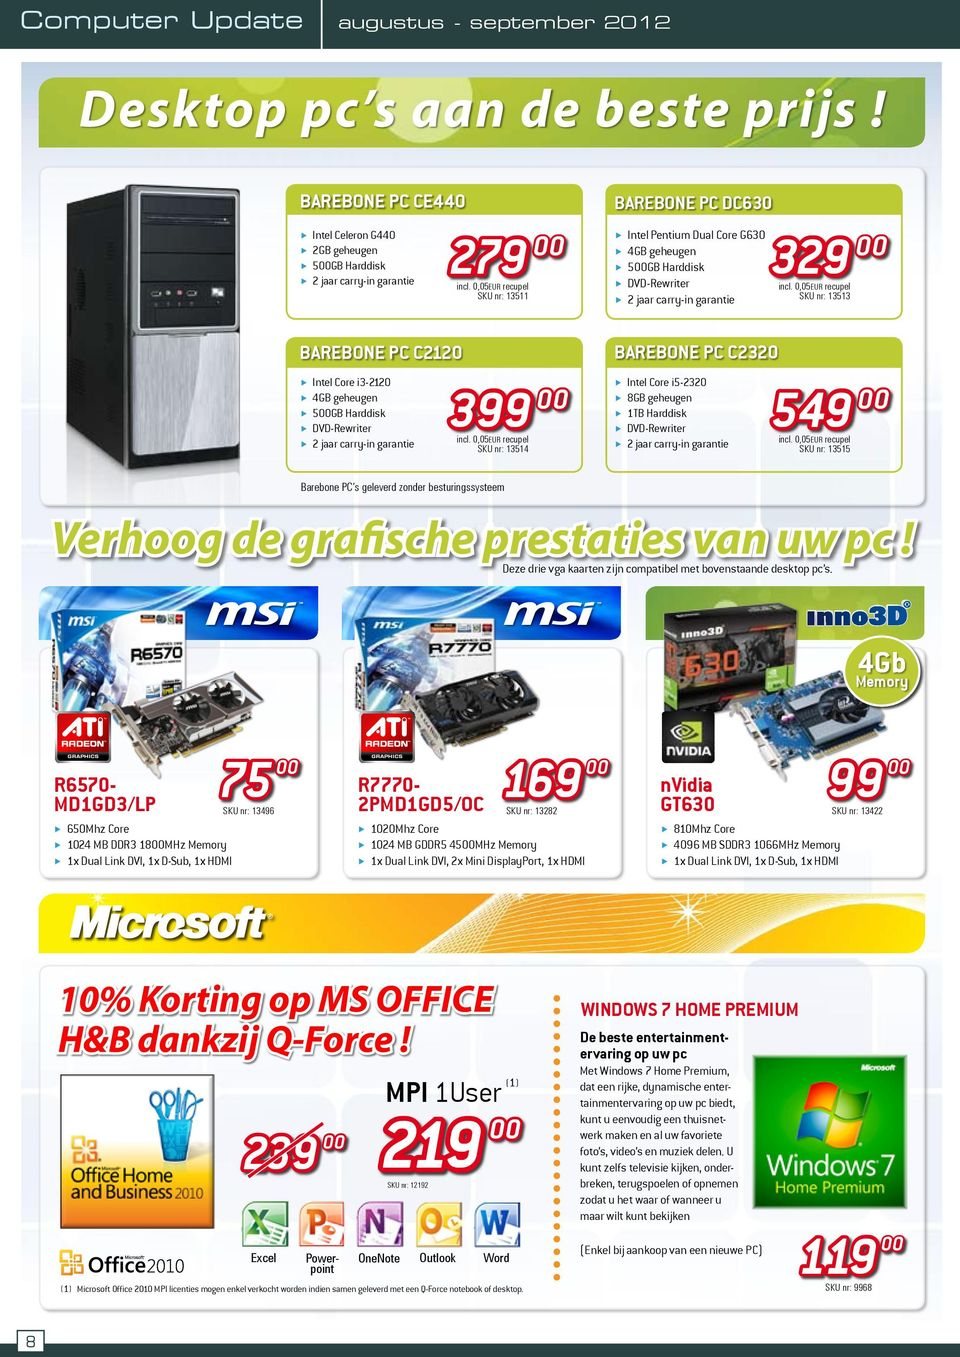 garantie 329 SKU nr: 13513 Barebone PC C2120 Intel Core i3-2120 4GB geheugen 5GB Harddisk 2 jaar carry-in garantie 399 SKU nr: 13514 Barebone PC C2320 Intel Core i5-2320 1TB Harddisk 2 jaar carry-in